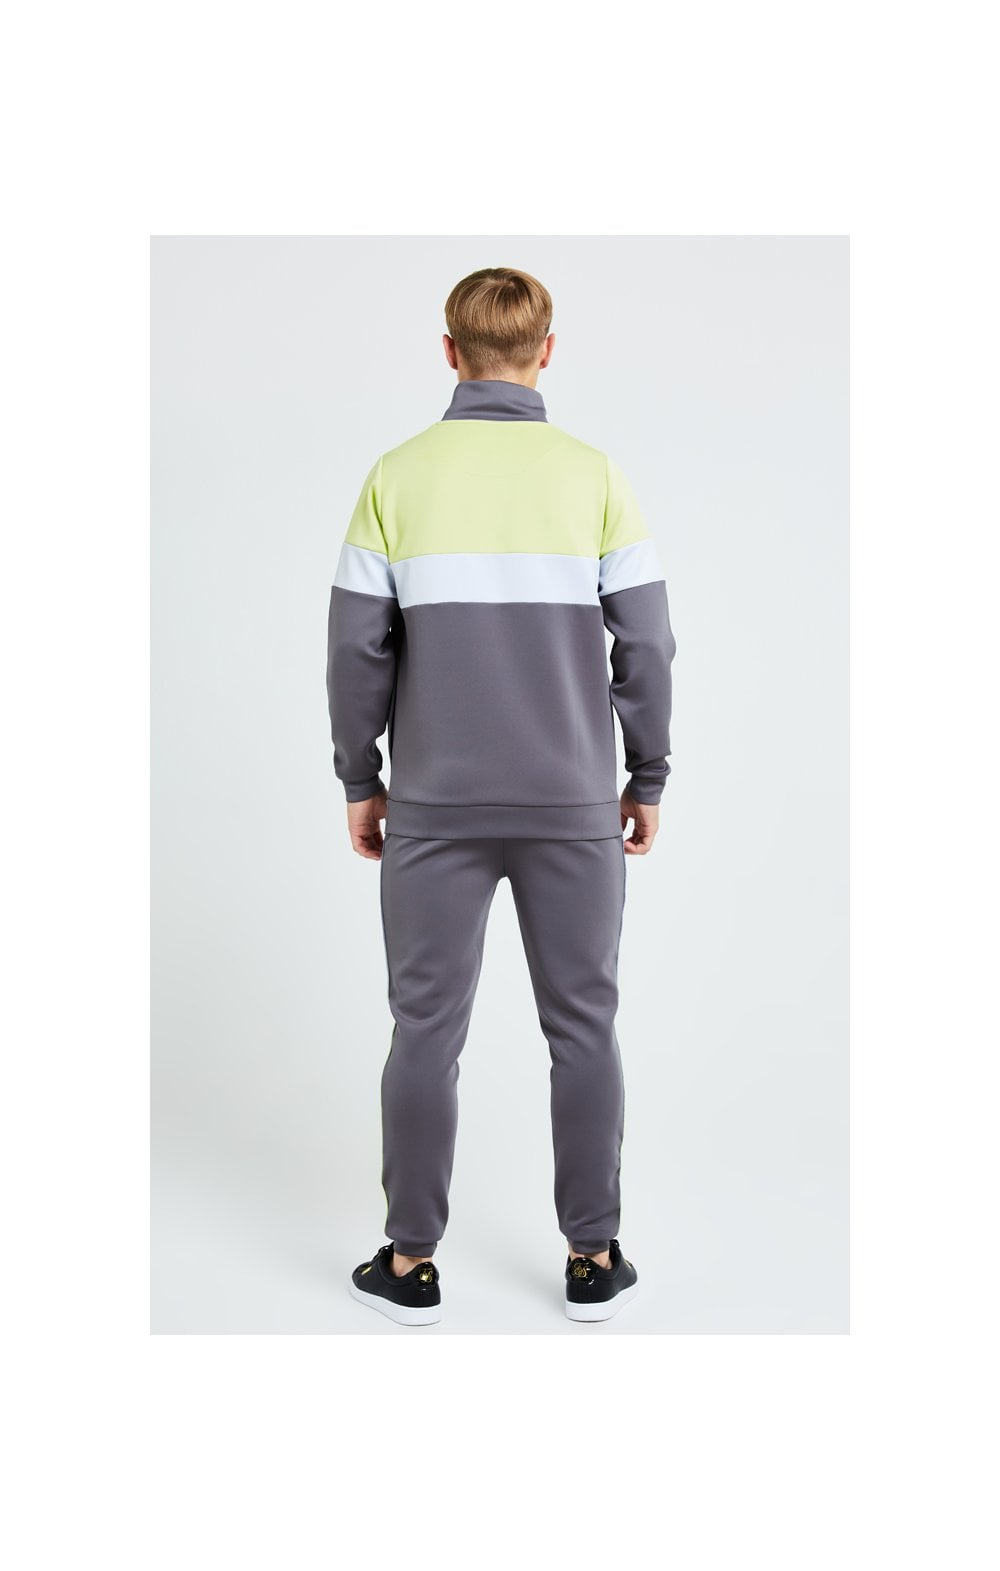 Illusive London Blaze Quarter Zip Hoodie - Dark Grey & Lime (5)